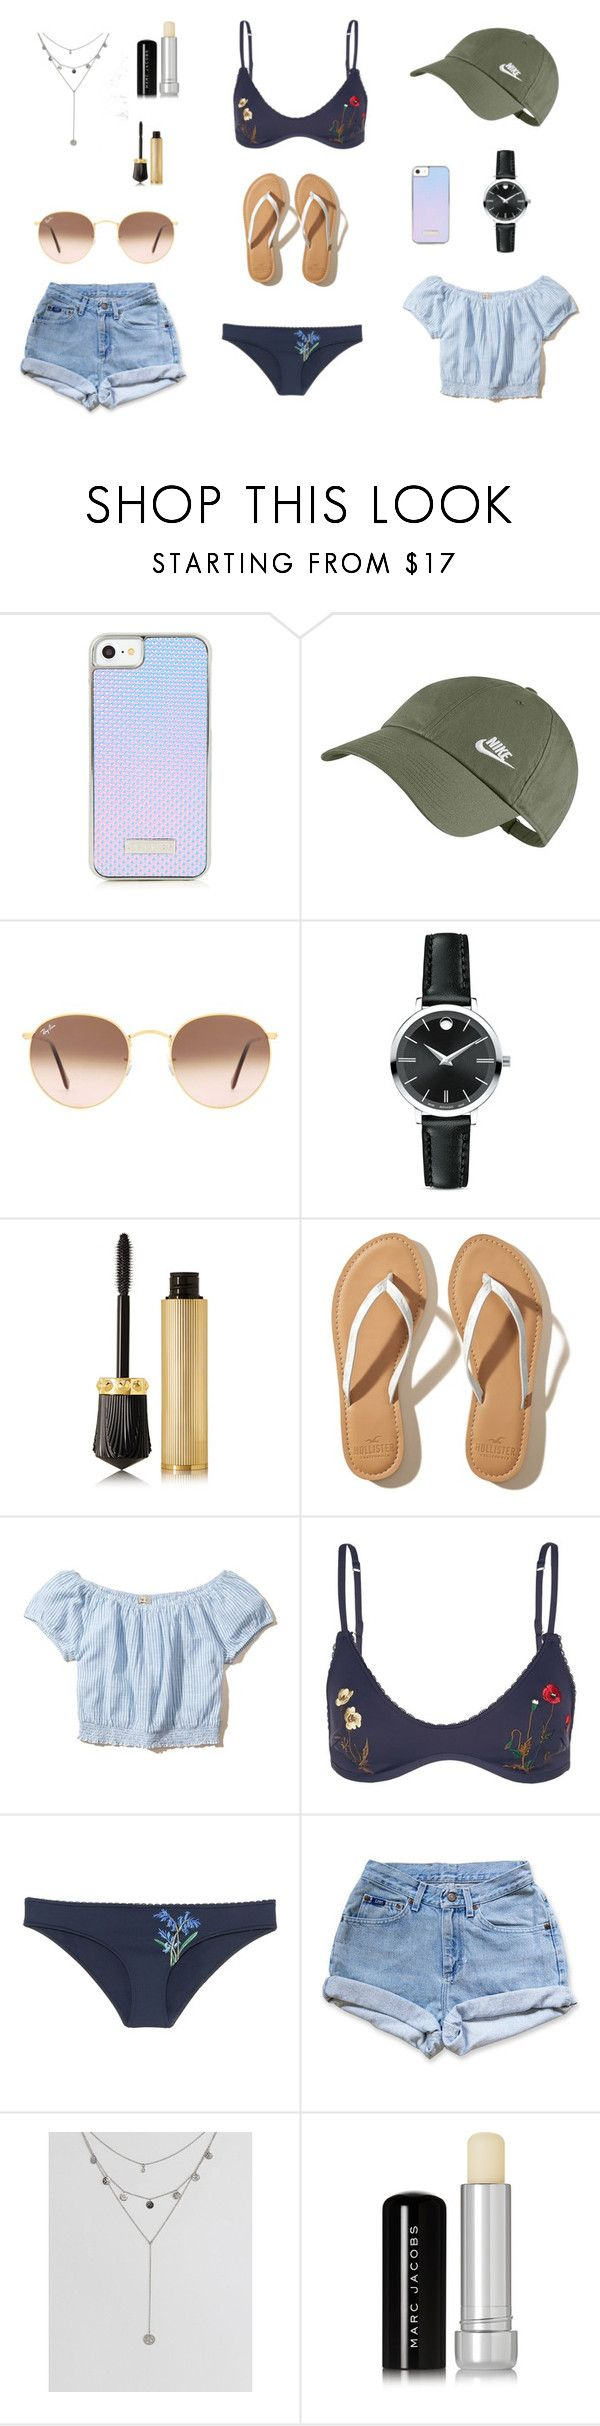 """""""Sunday funday in Somerset, Bermuda"""" by vi-luise ❤ liked on Polyvore featuring NIKE, Ray-Ban, Movado, Christian Louboutin, Hollister Co., STELLA McCARTNEY, Levi's, ASOS and Marc Jacobs"""